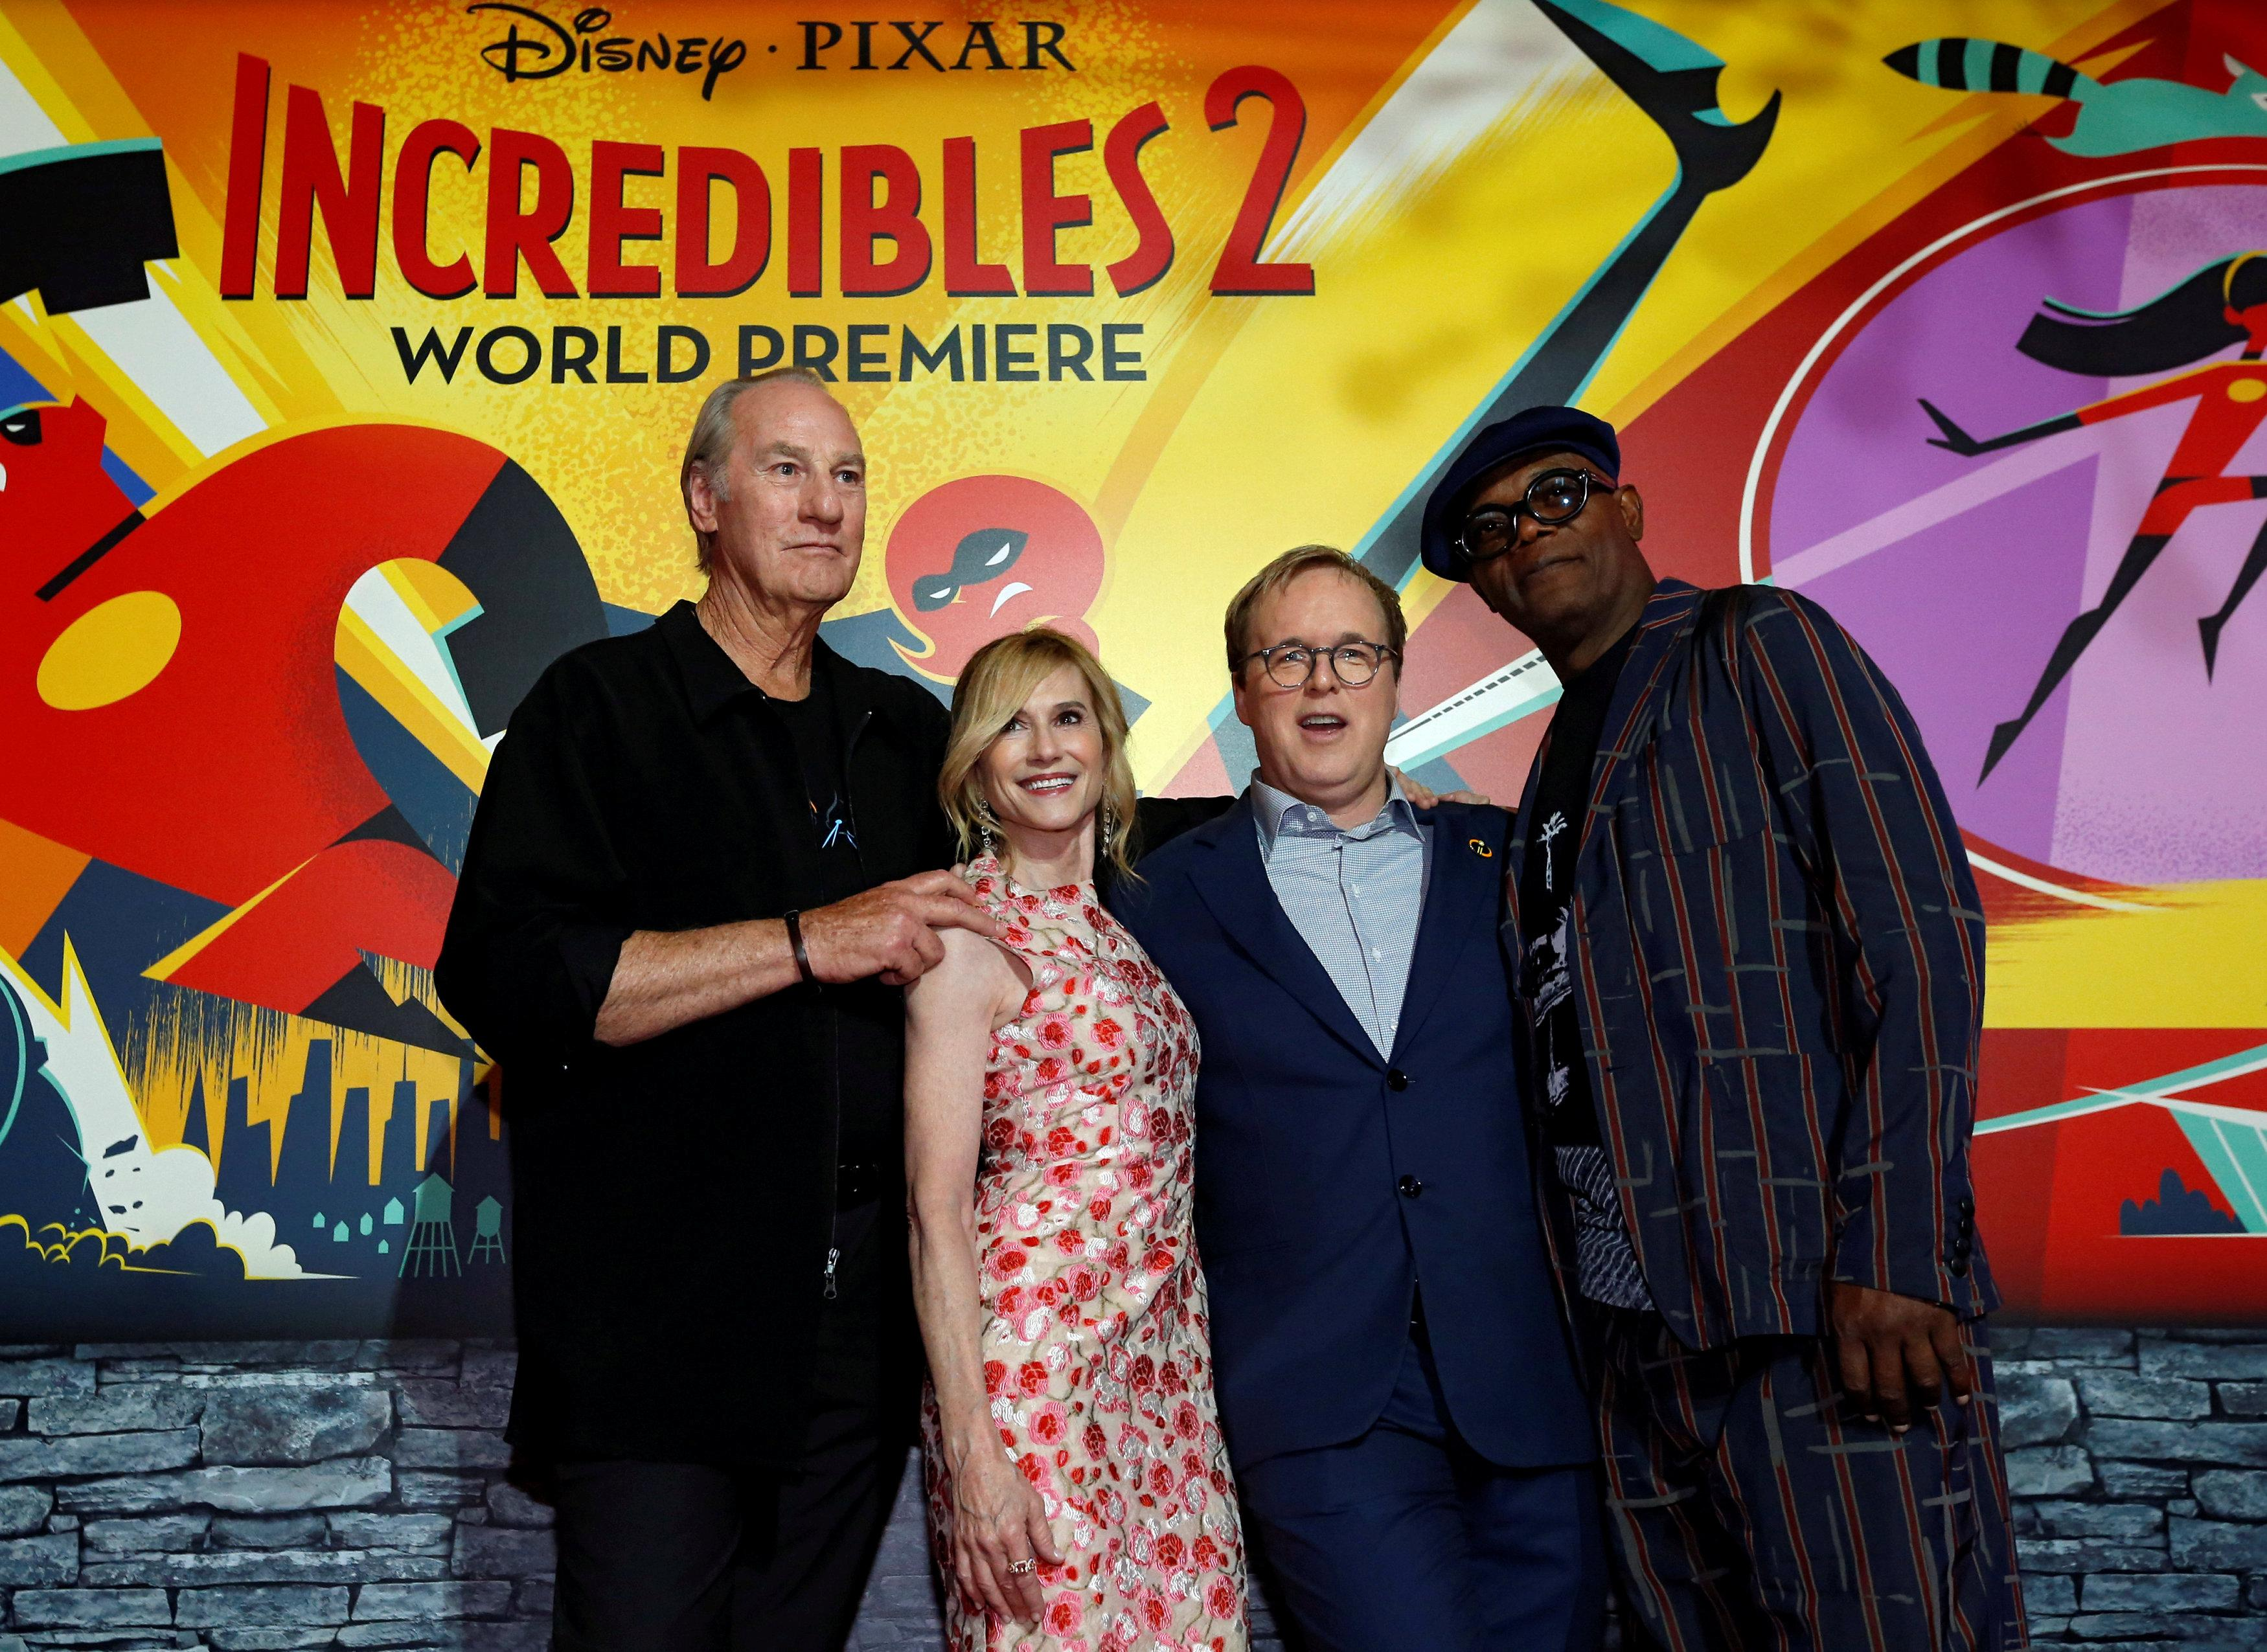 Actor and director Brad Bird, and actors Craig T. Nelson, Holly Hunter and Samuel L. Jackson pose at the premiere for the movie